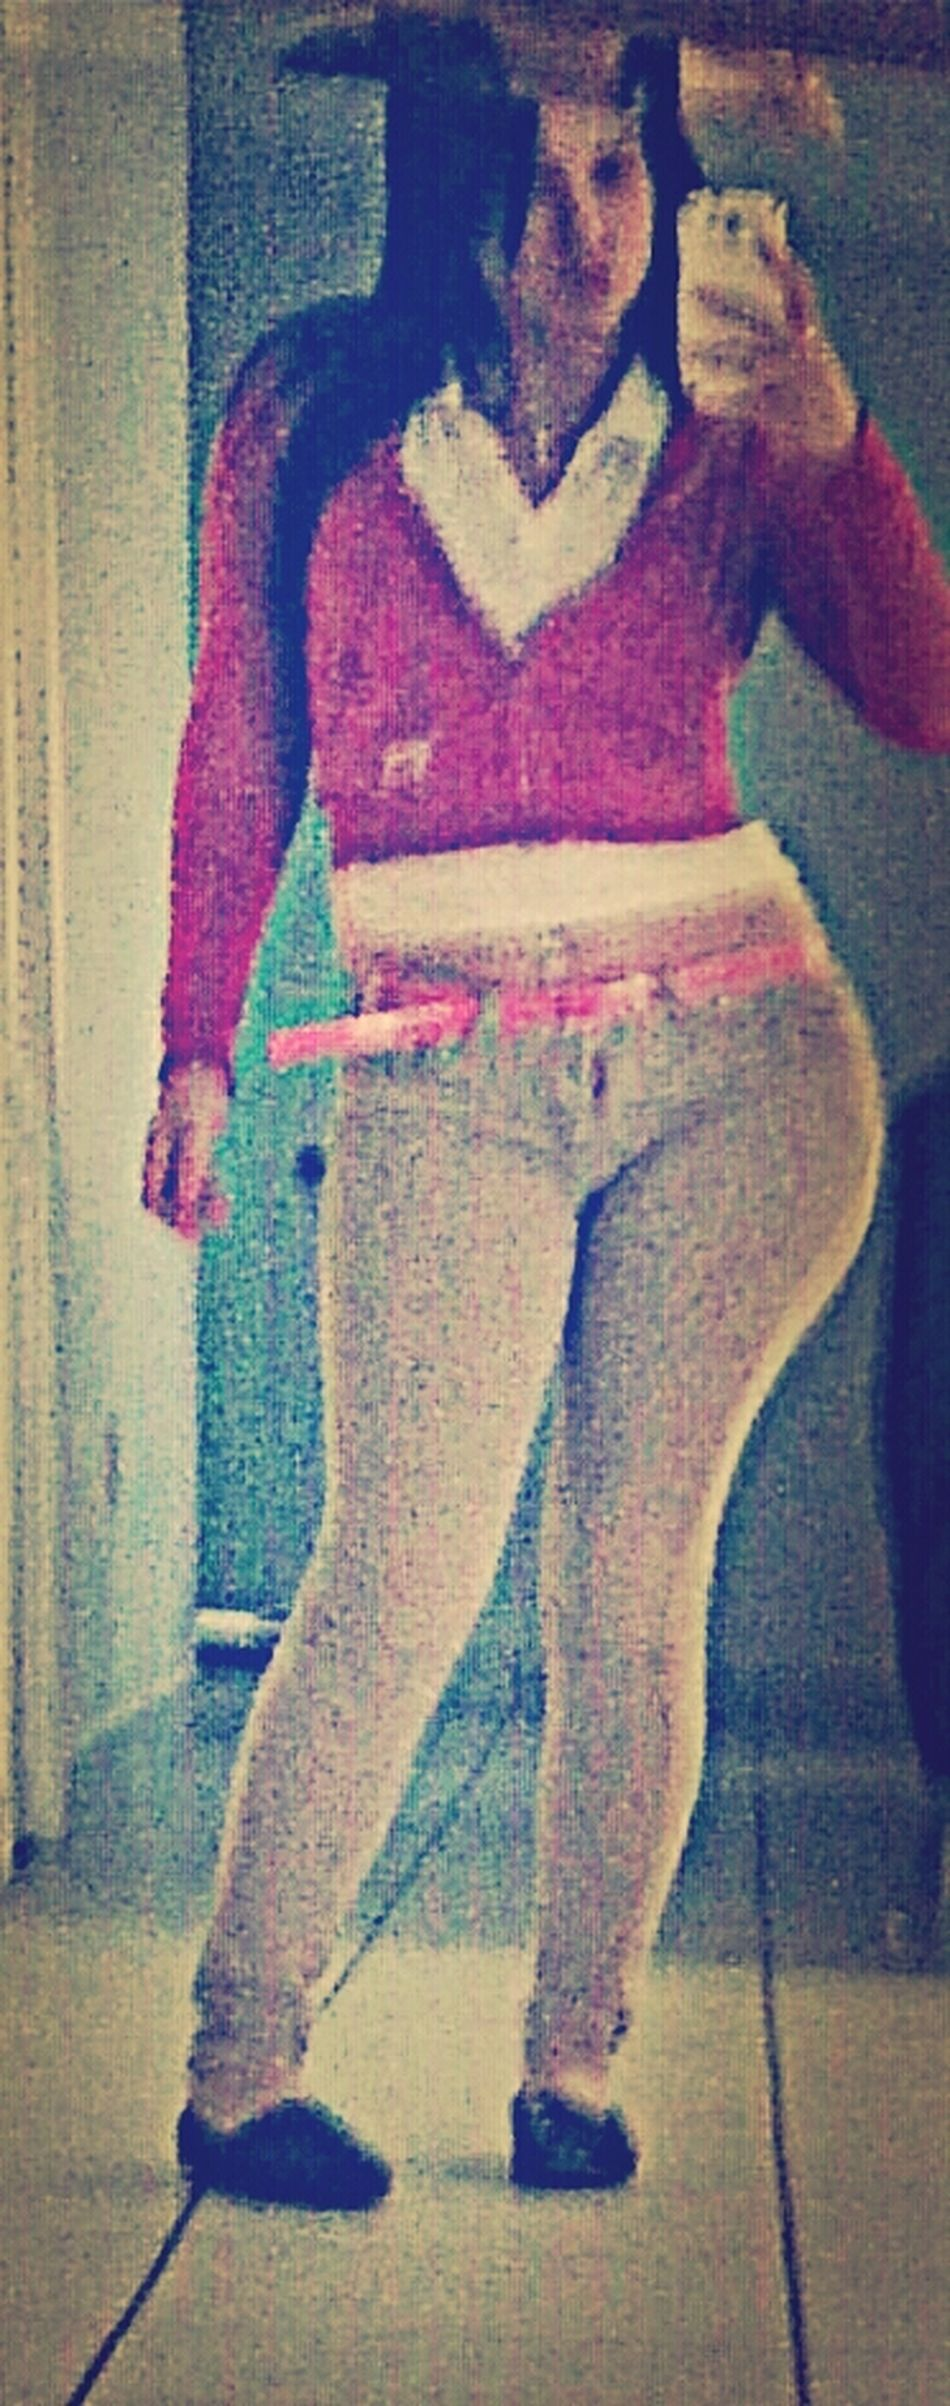 At bestfriend's house  #Pink #earliertoday 